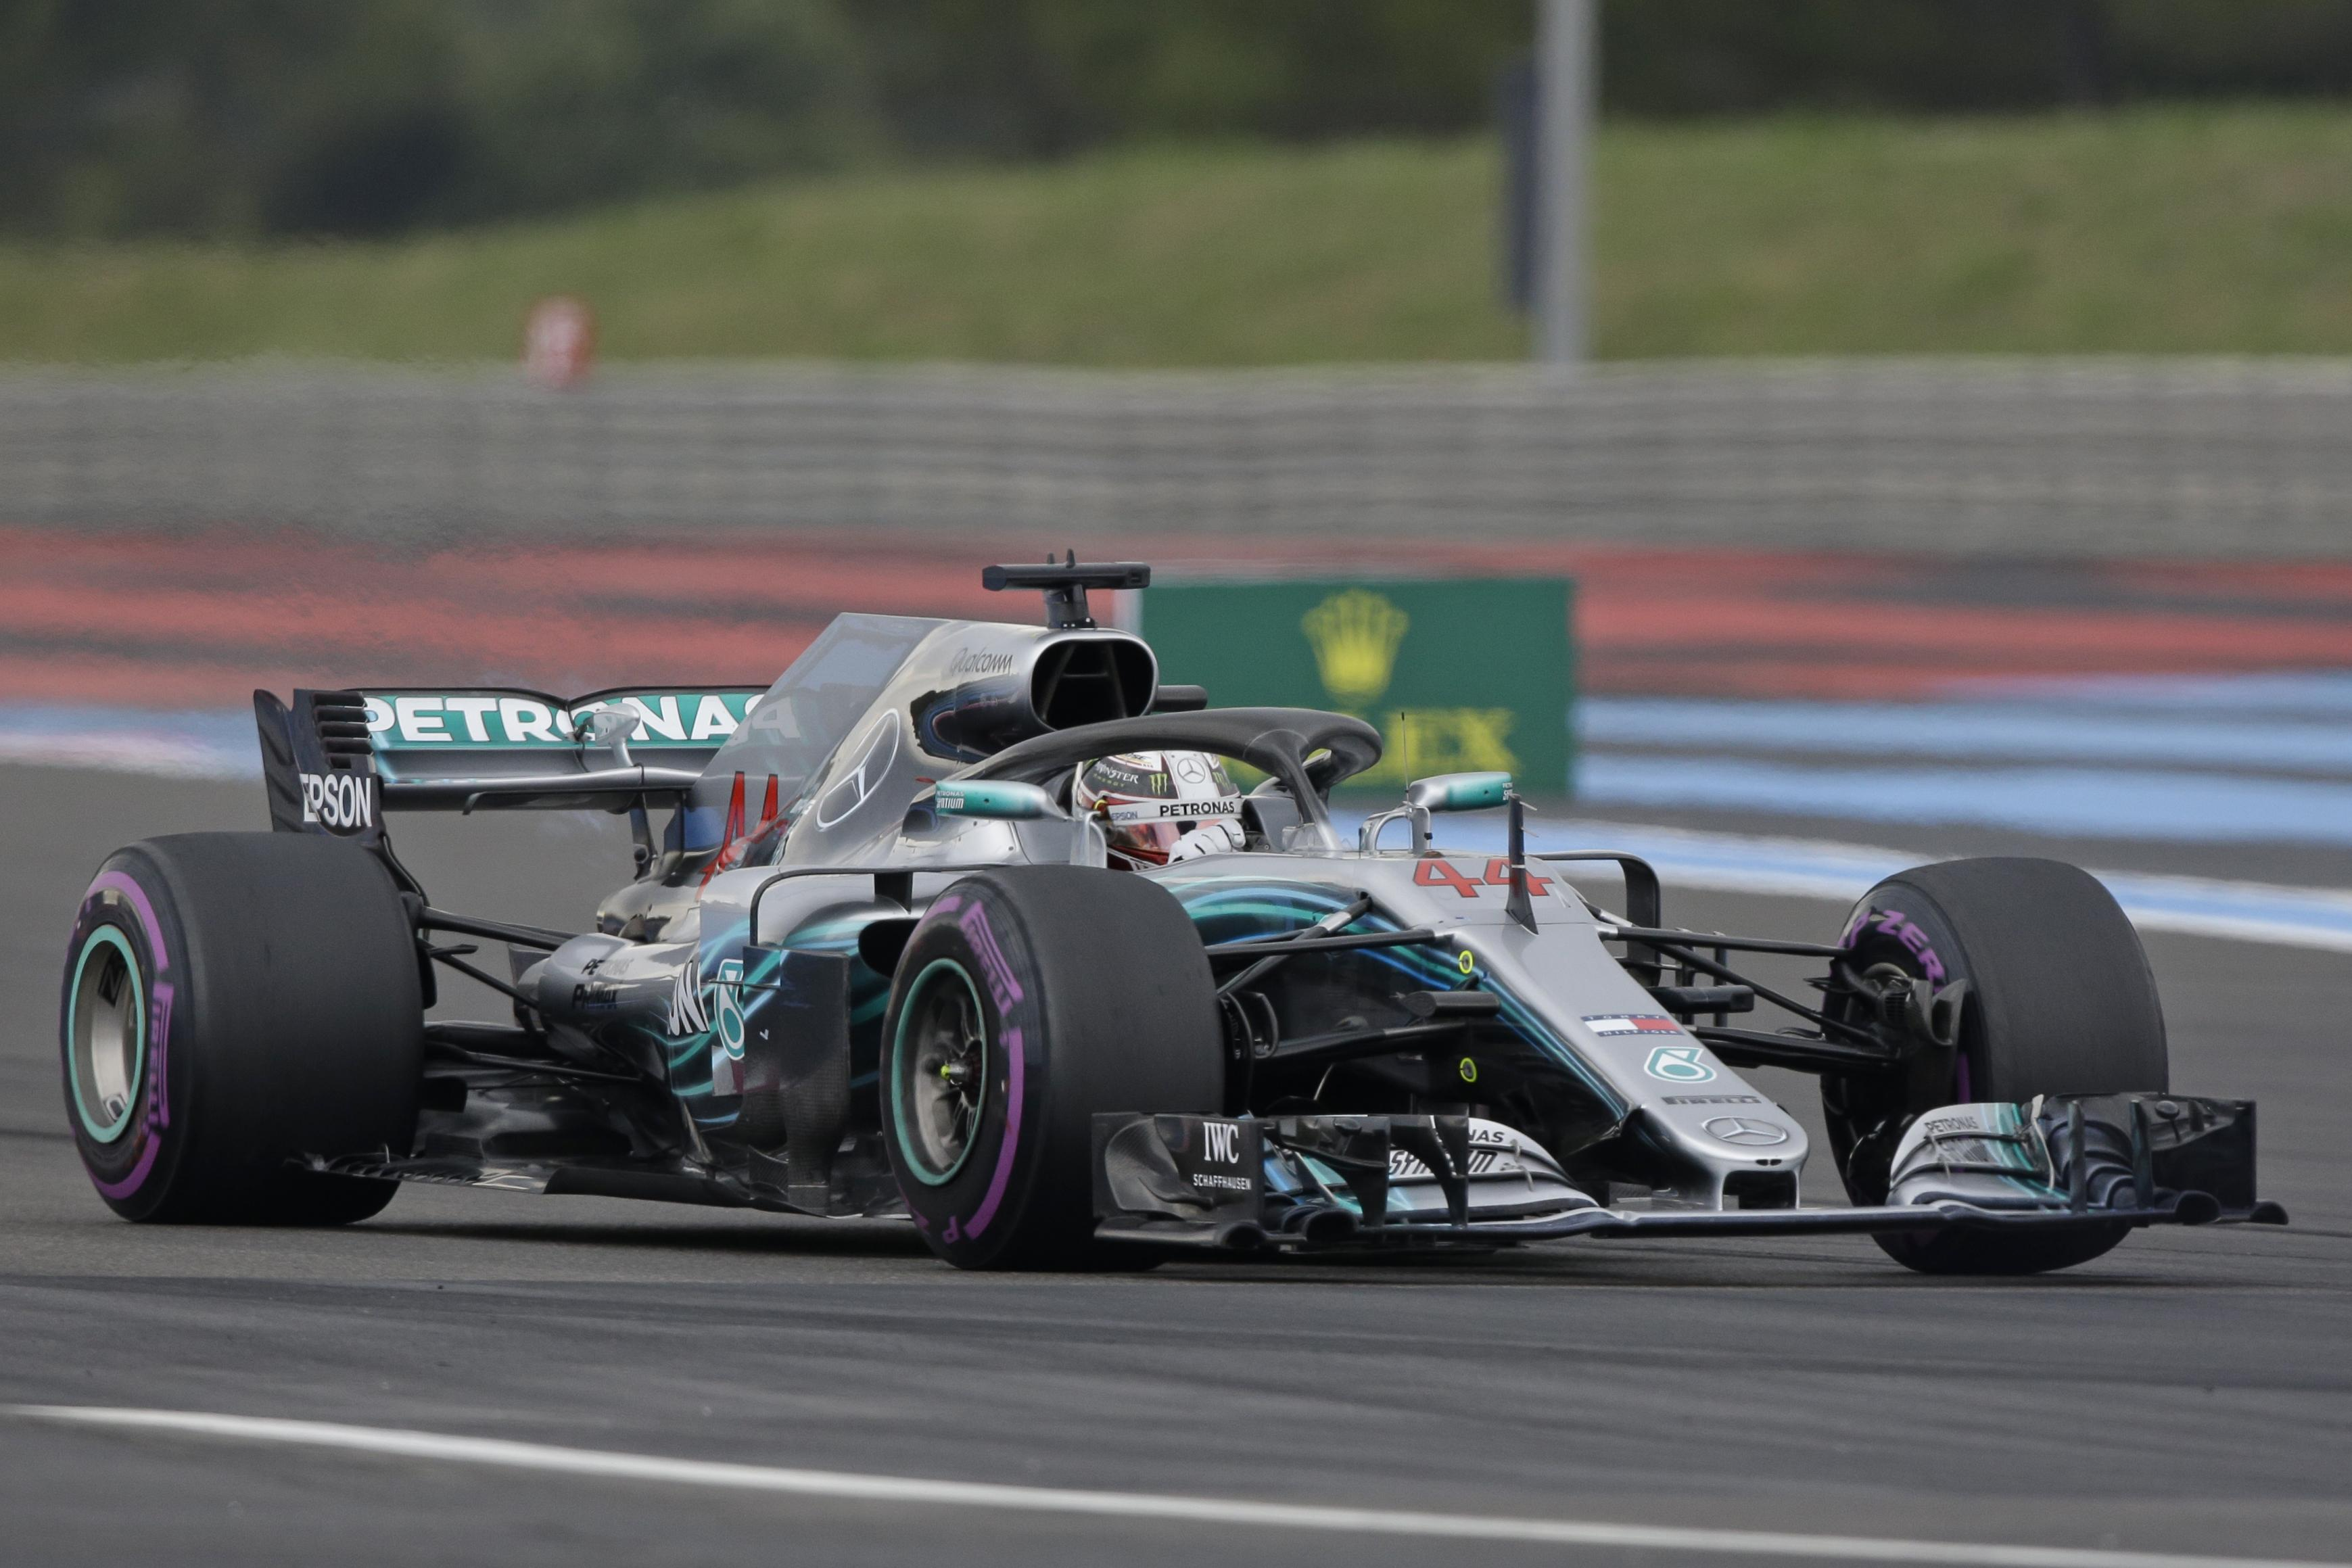 Lewis Hamilton dominated Friday's practice at the Paul Ricard Circuit